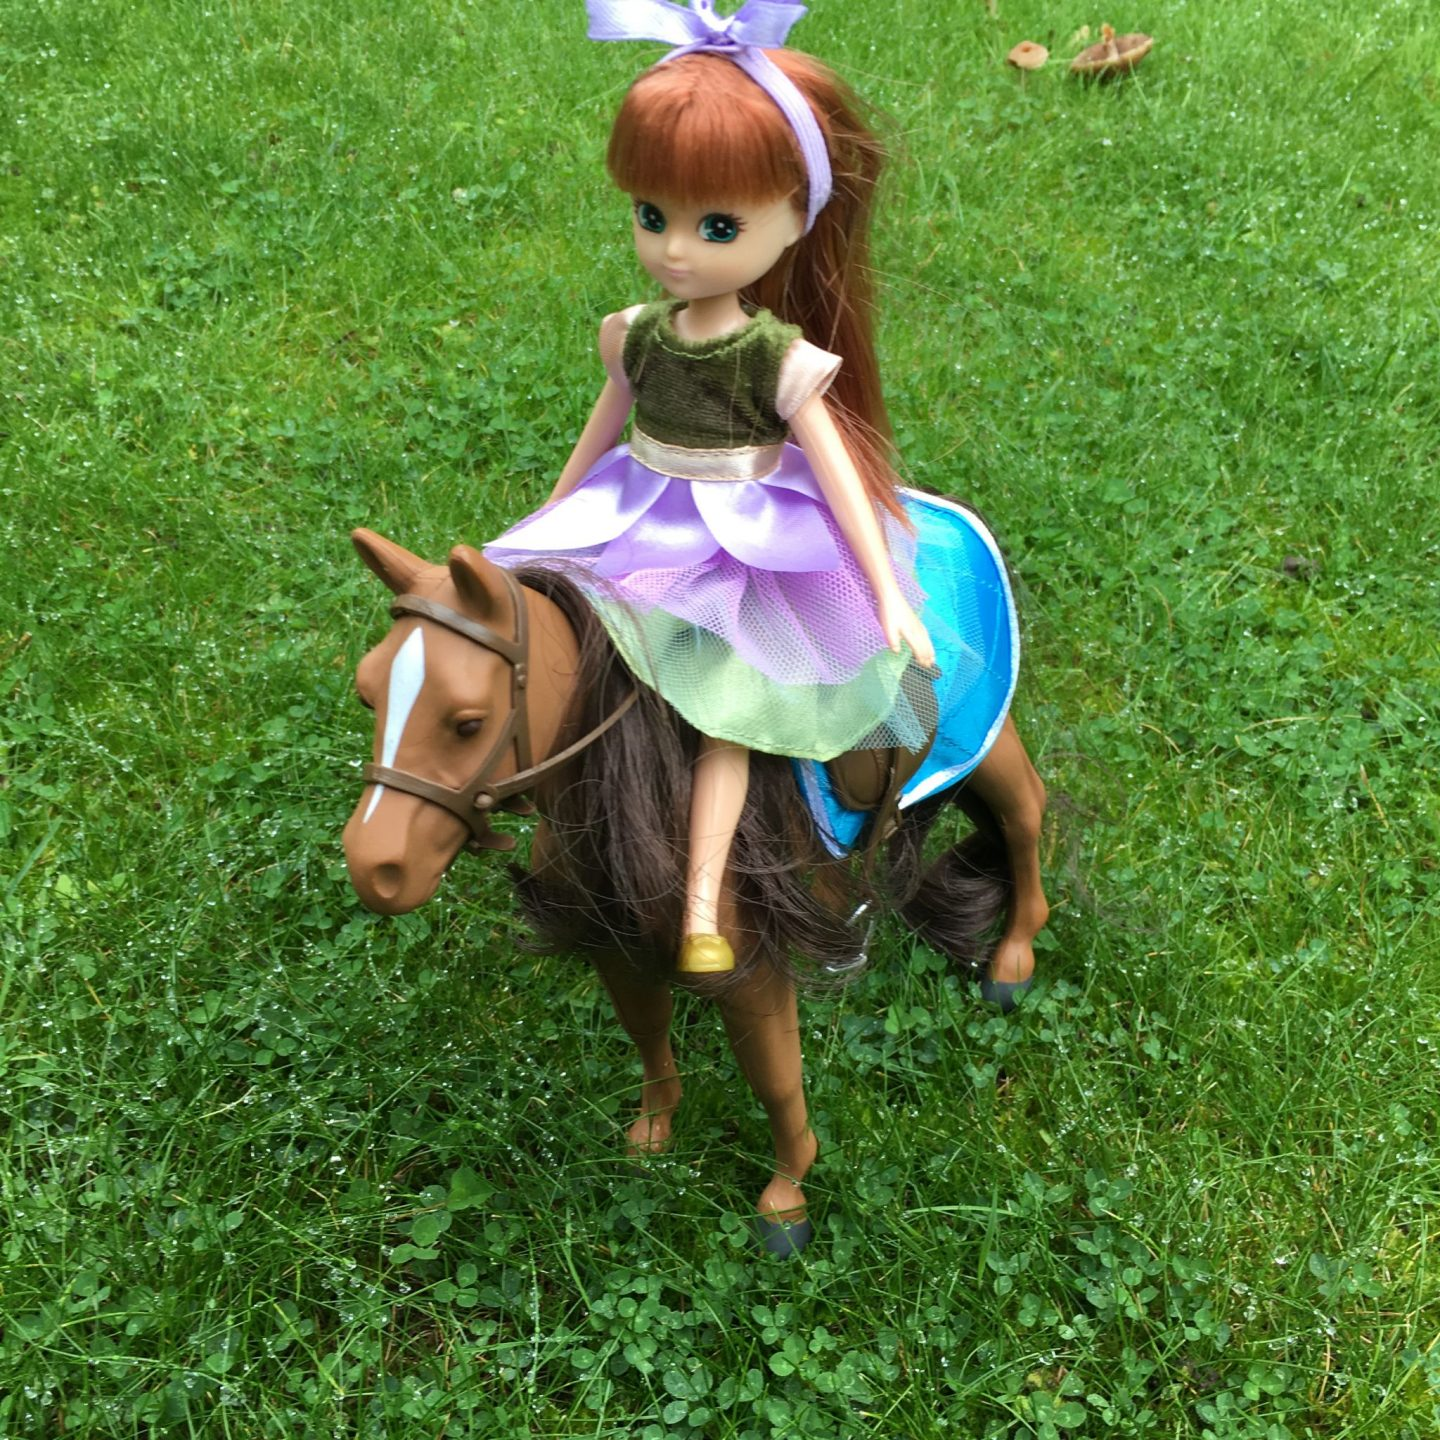 Lottie dolls review and giveaway